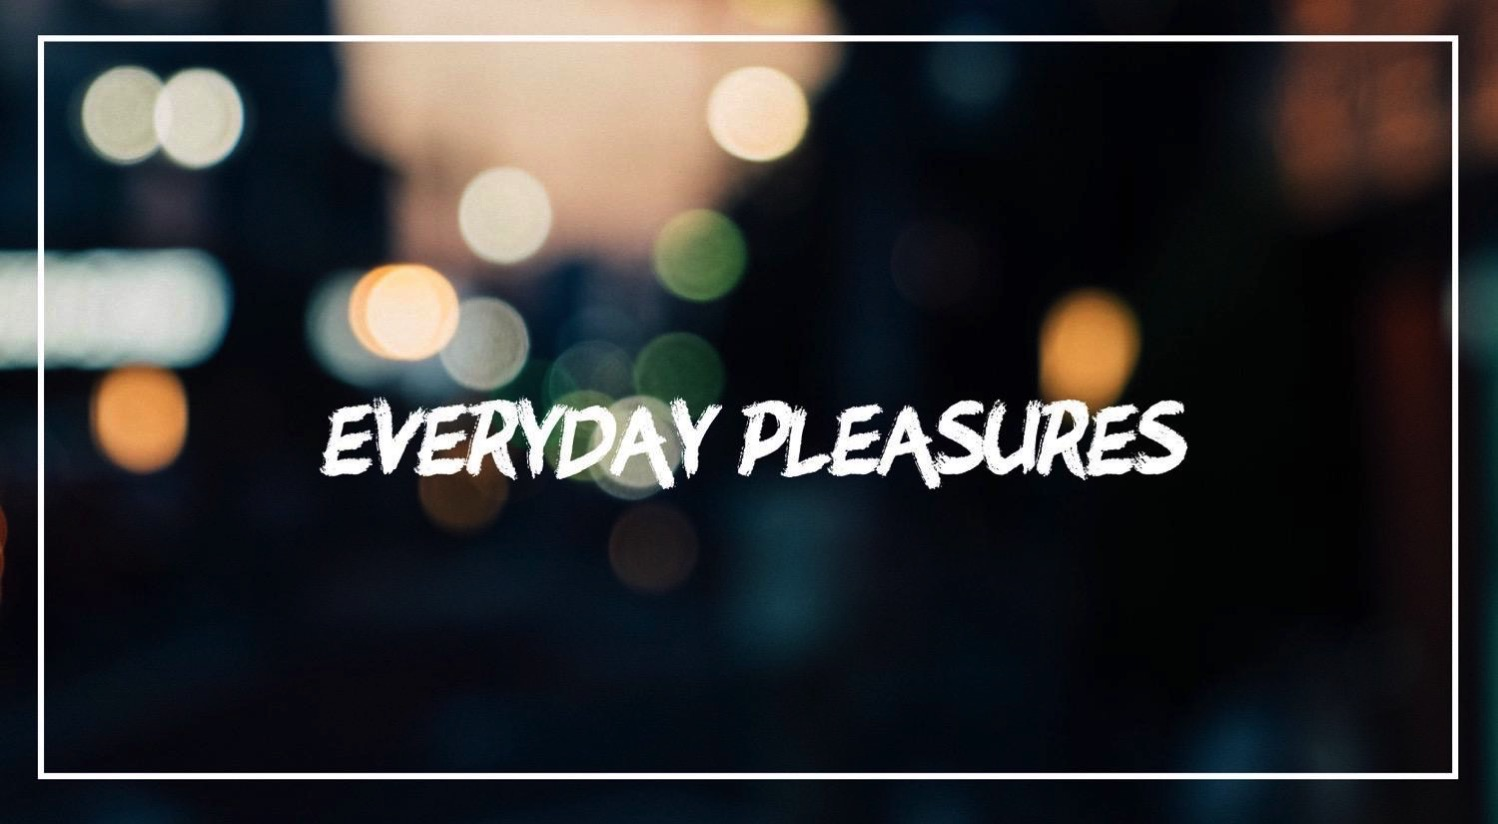 Everyday pleasures 1